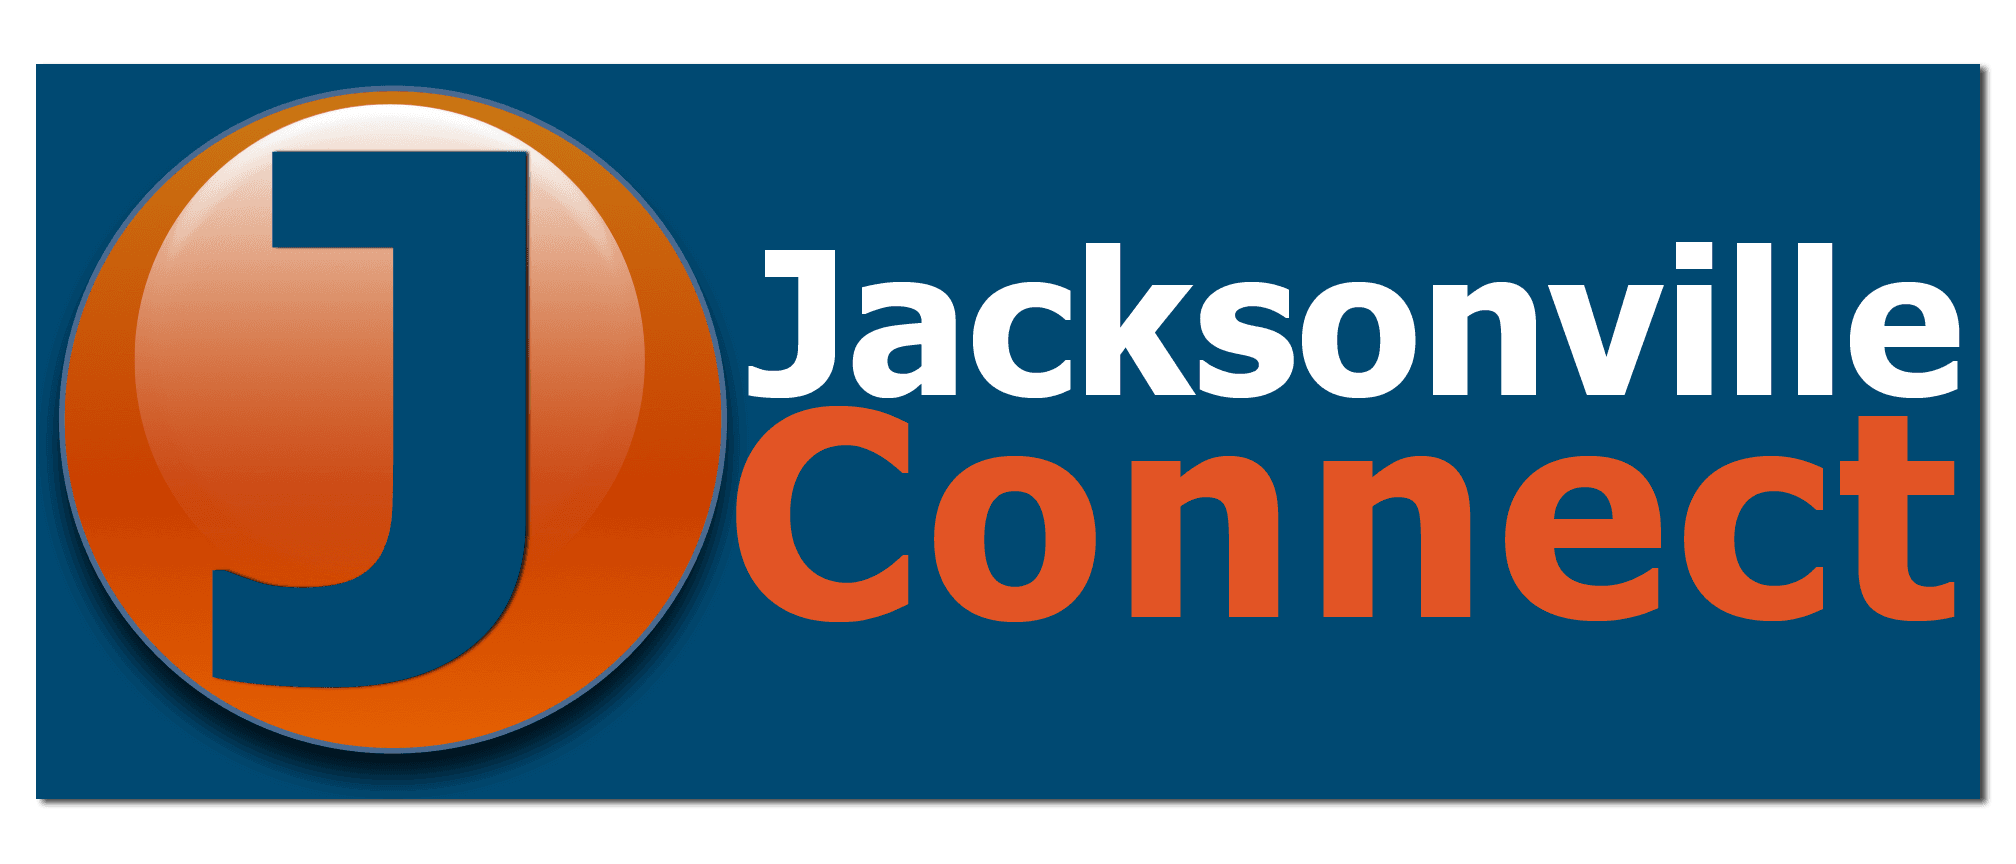 Sign up for Jacksonville Connect to receive important alerts Opens in new window